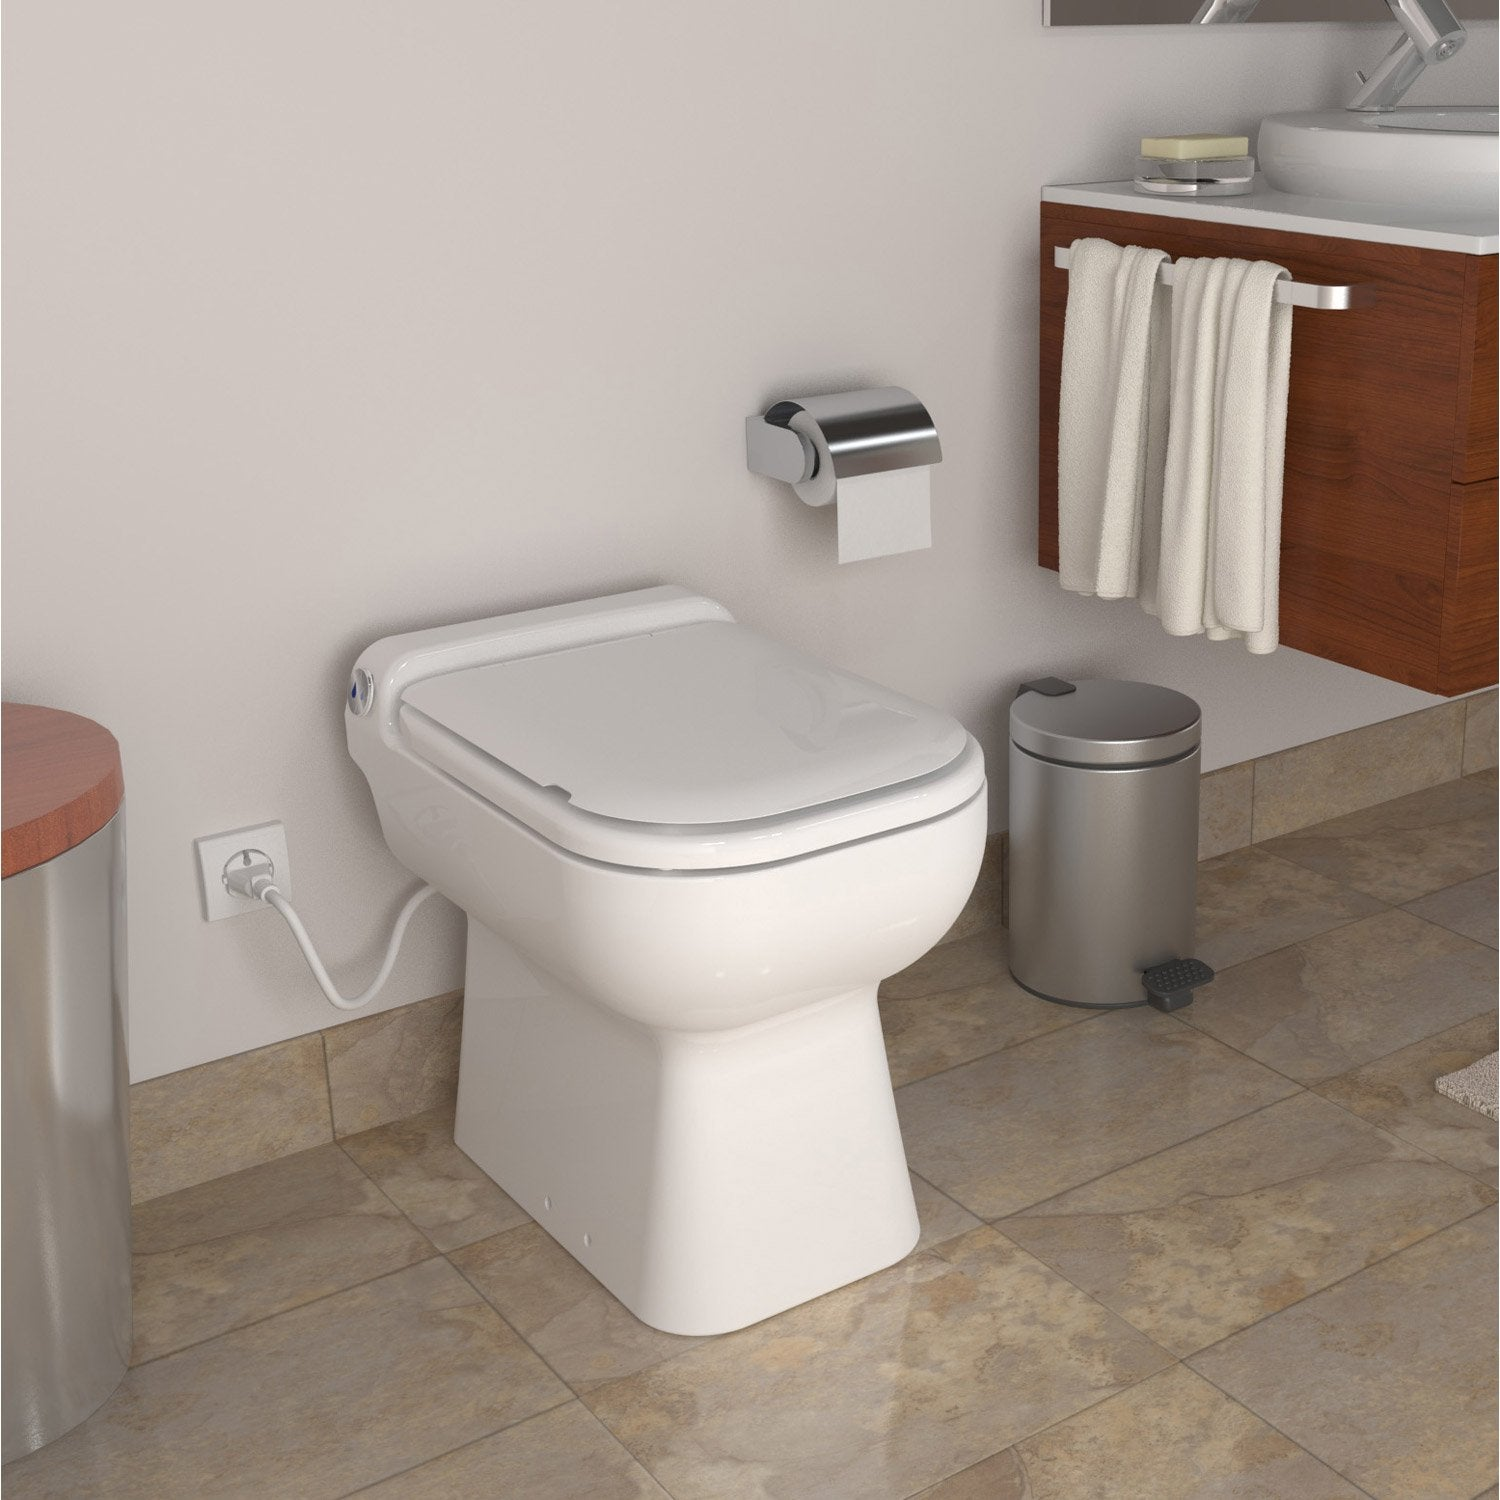 Wc poser avec broyeur int gr turbo design leroy merlin for Leroy merlin wc broyeur